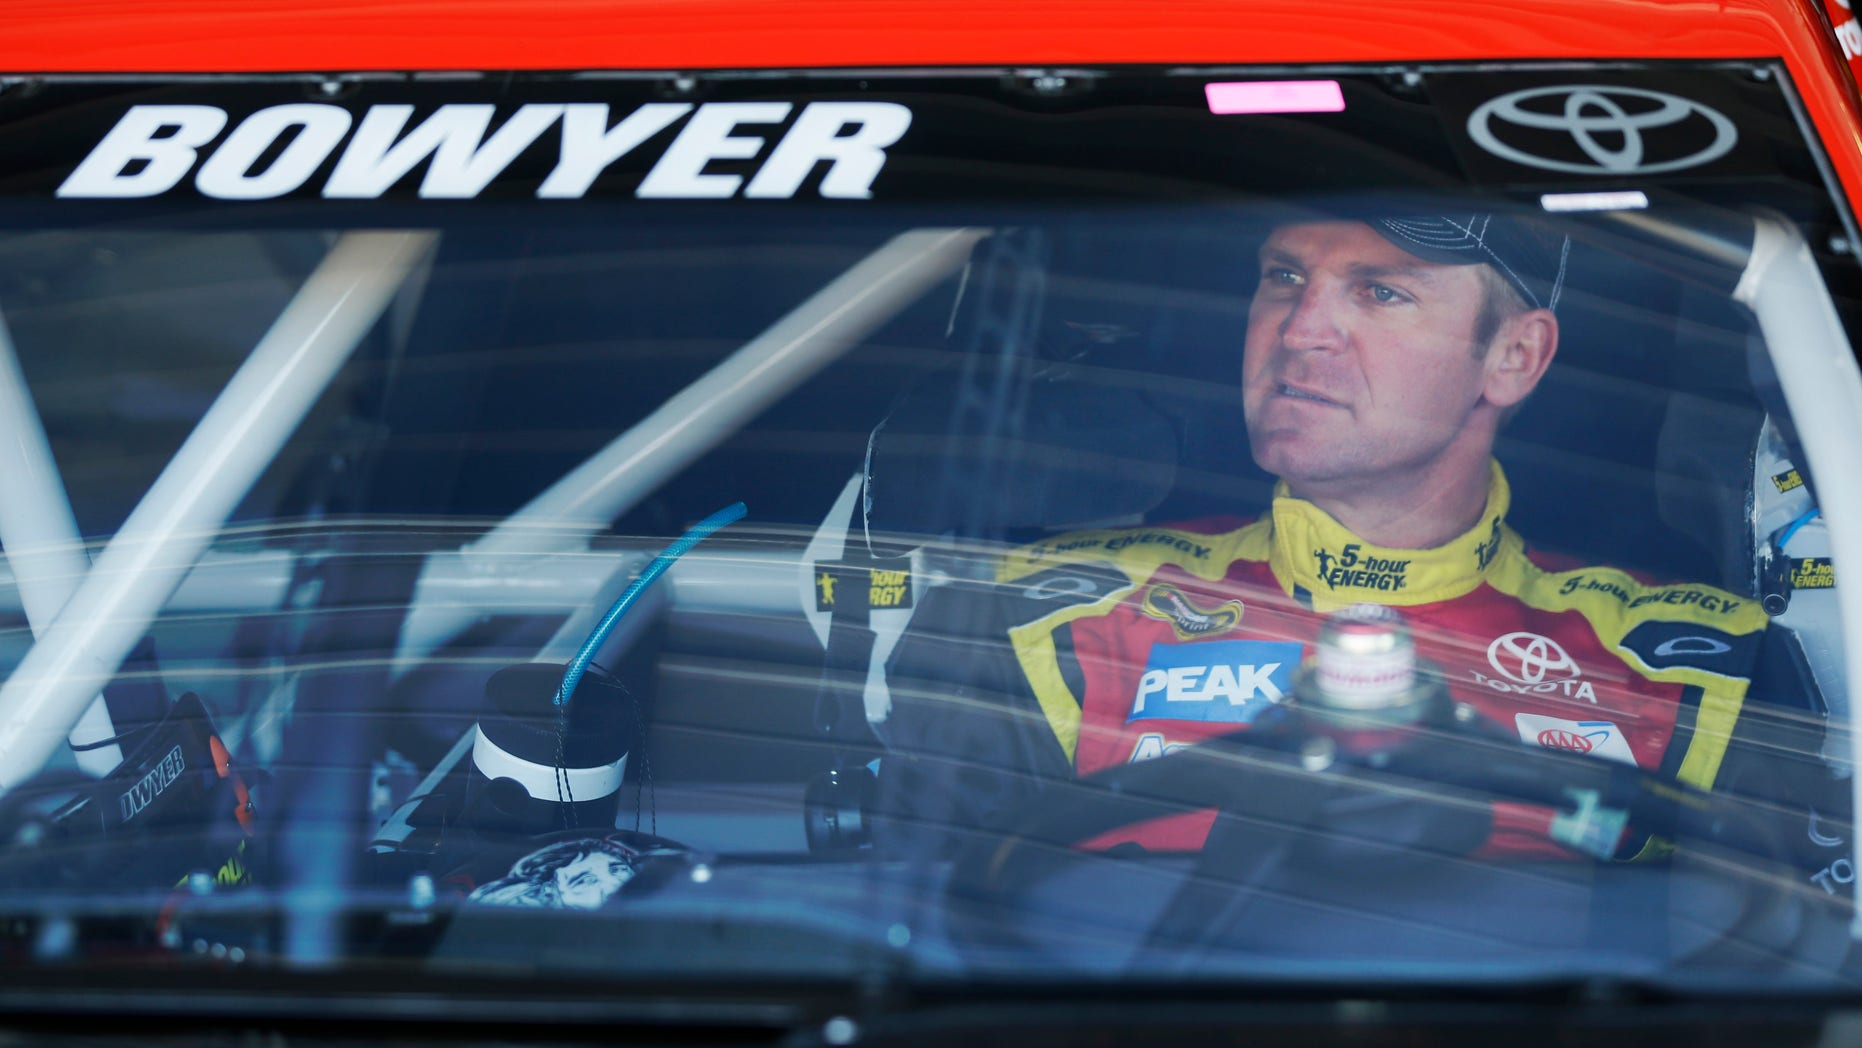 FILE - In this April 19, 2013 file photo, Clint Bowyer waits for the start of practice for the NASCAR Sprint Cup series auto race at Kansas Speedway in Kansas City, Kan. Bowyer was always popular among his peers. A change of scenery to Michael Waltrip Racing has now made him one of NASCAR's stars.  (AP Photo/Orlin Wagner, File)